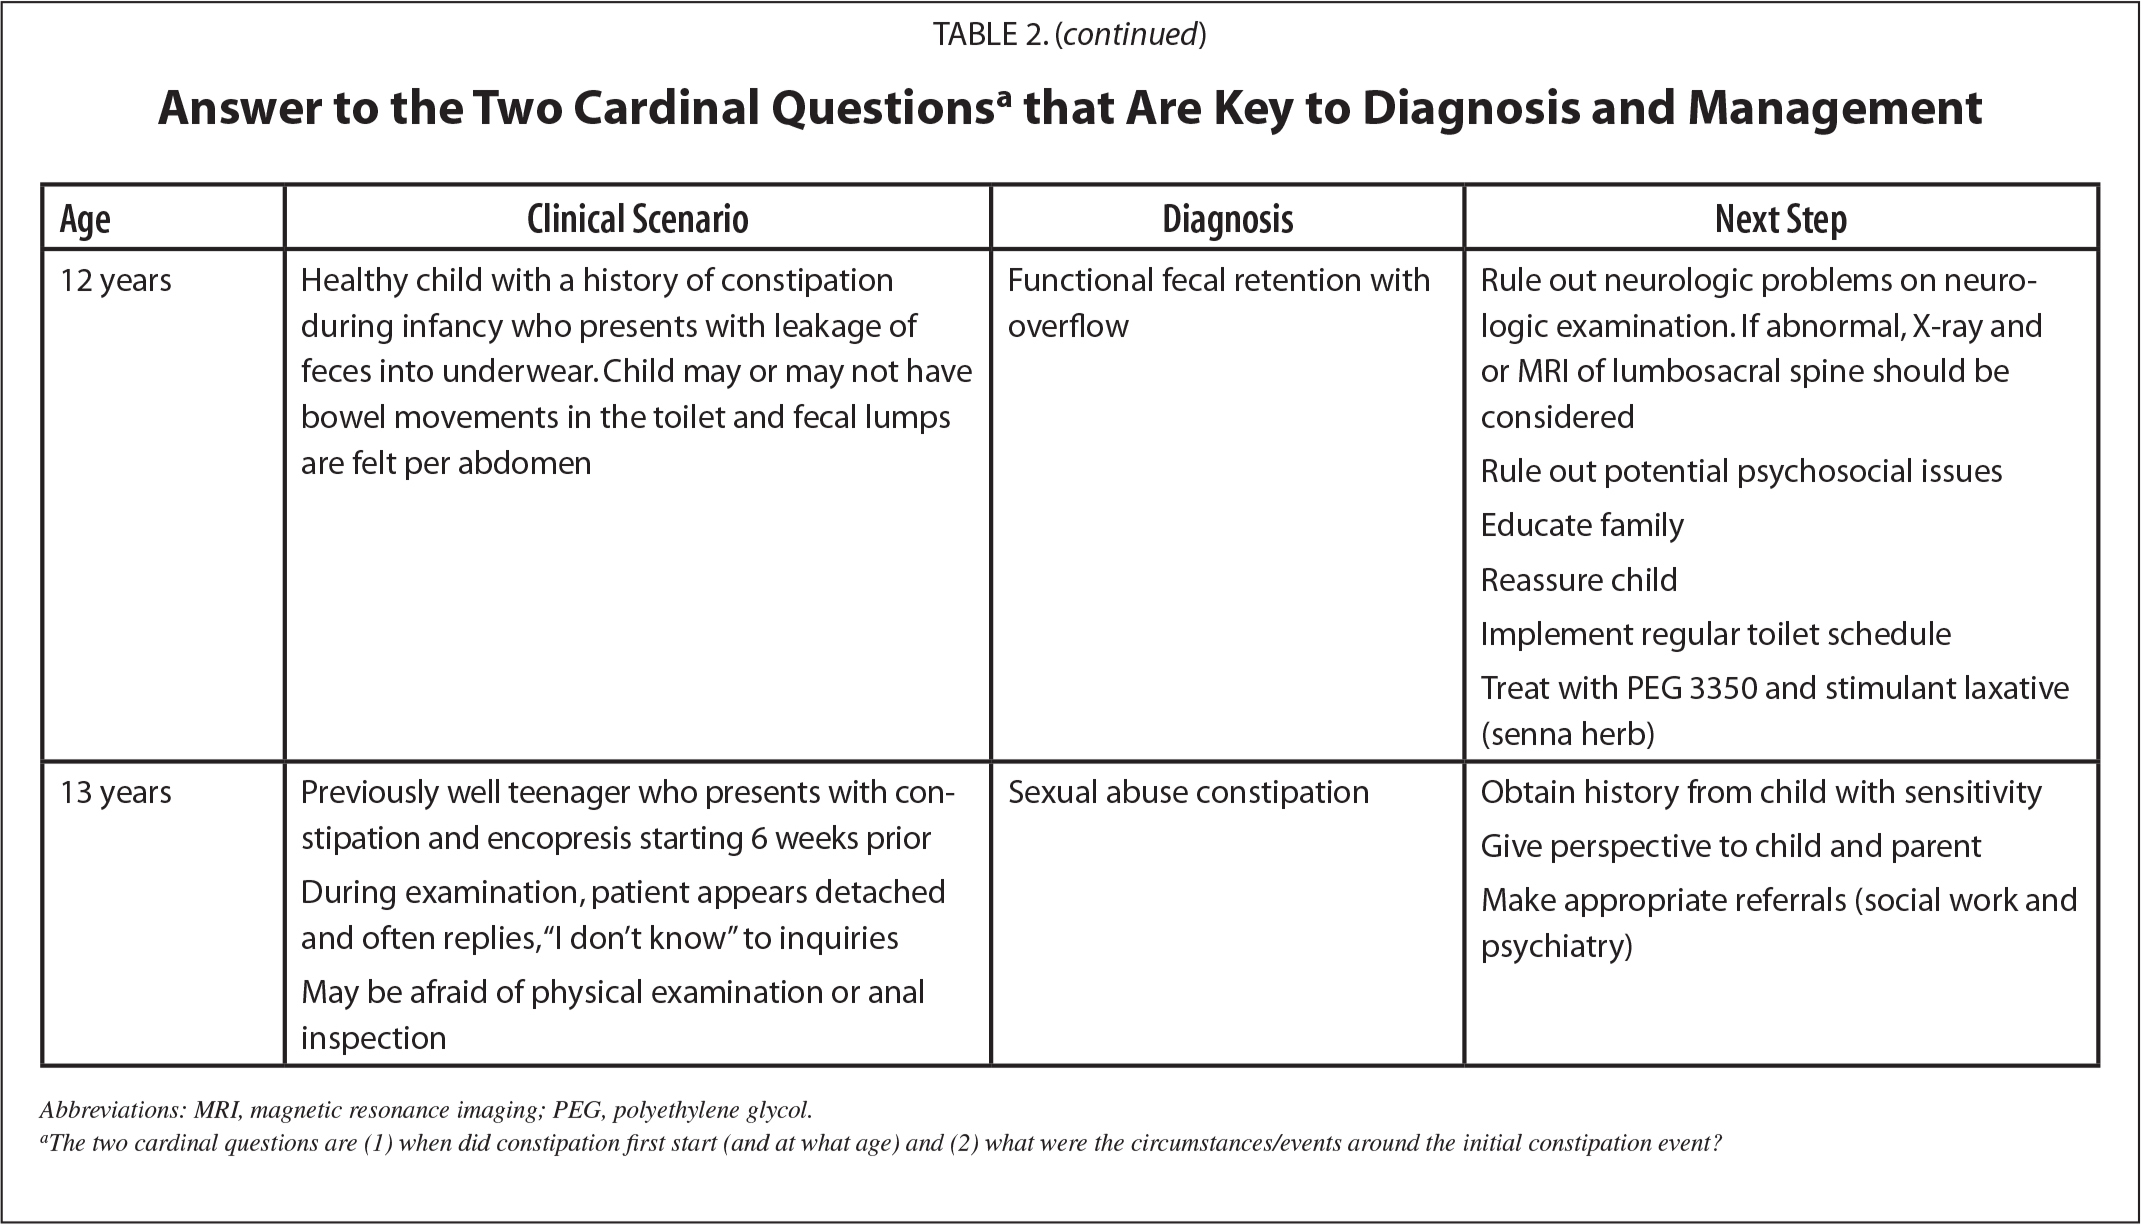 Answers to the Two Cardinal Questionsa that Are Key to Diagnosis and Management